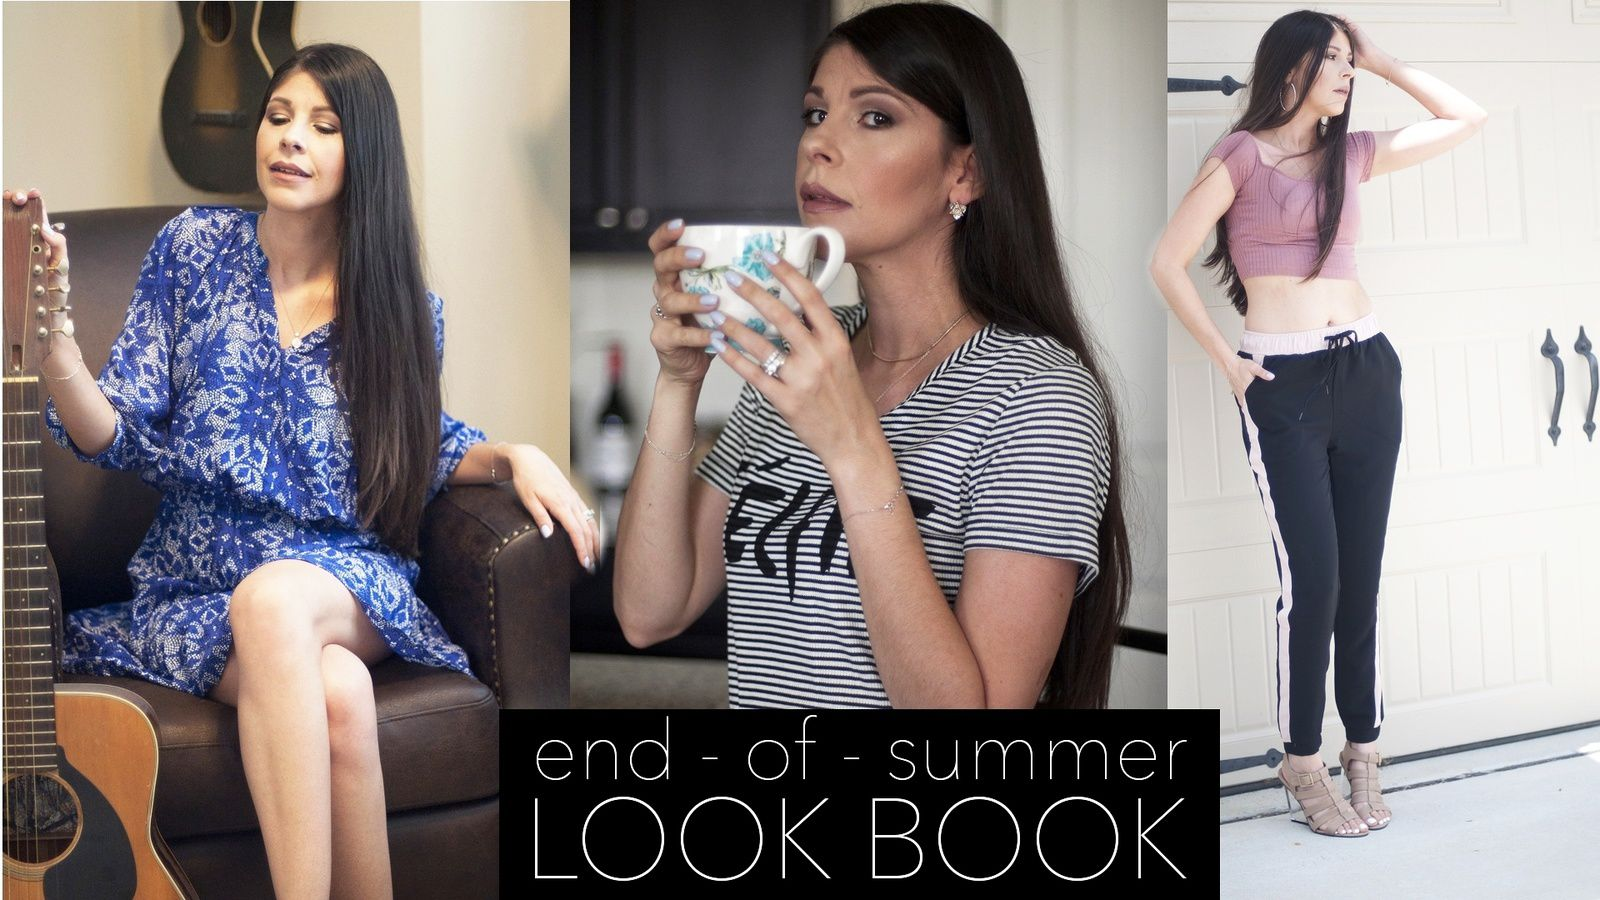 END OF SUMMER FASHION LOOK BOOK 2017